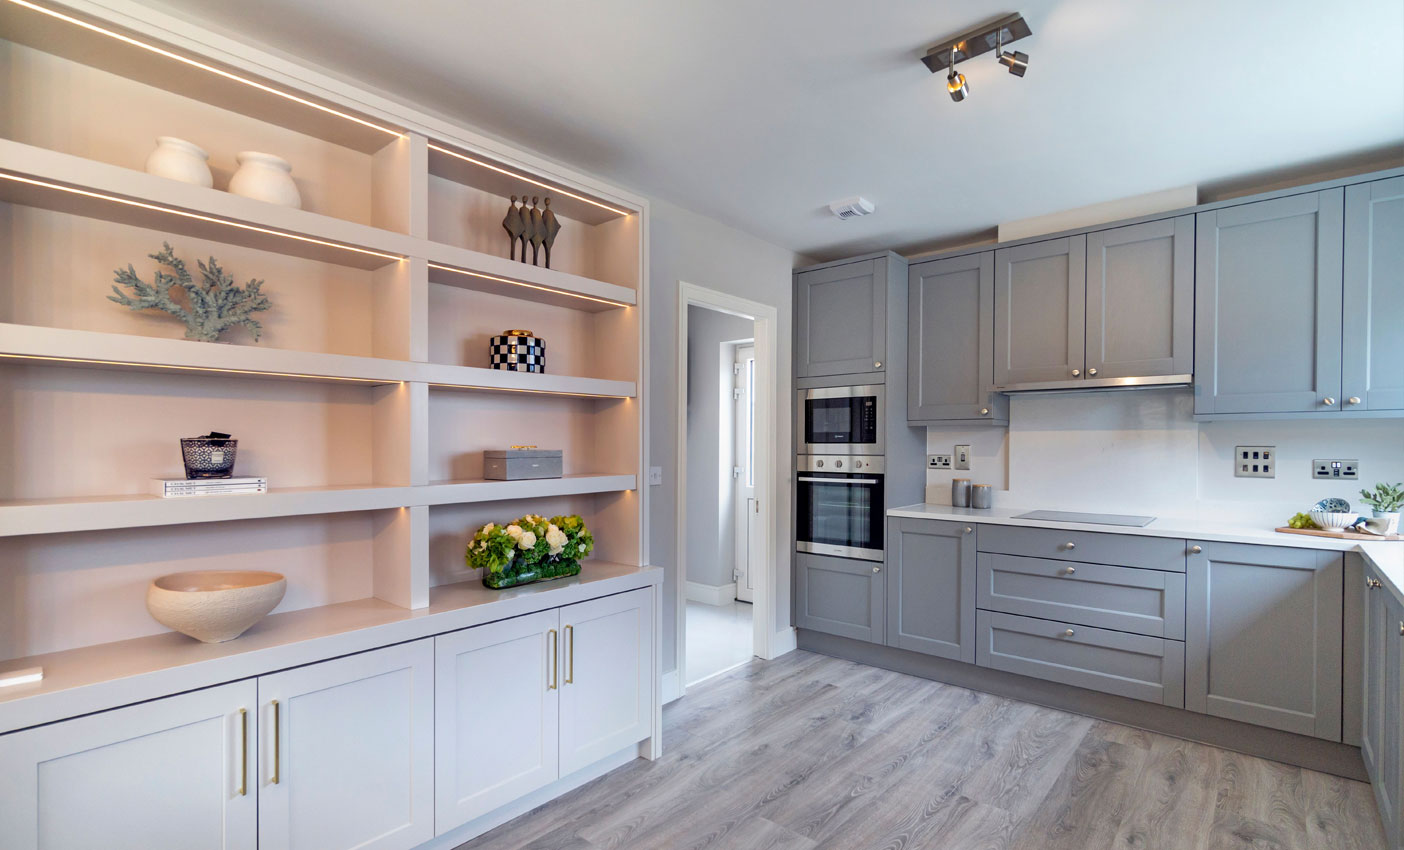 Soft close drawers and doors